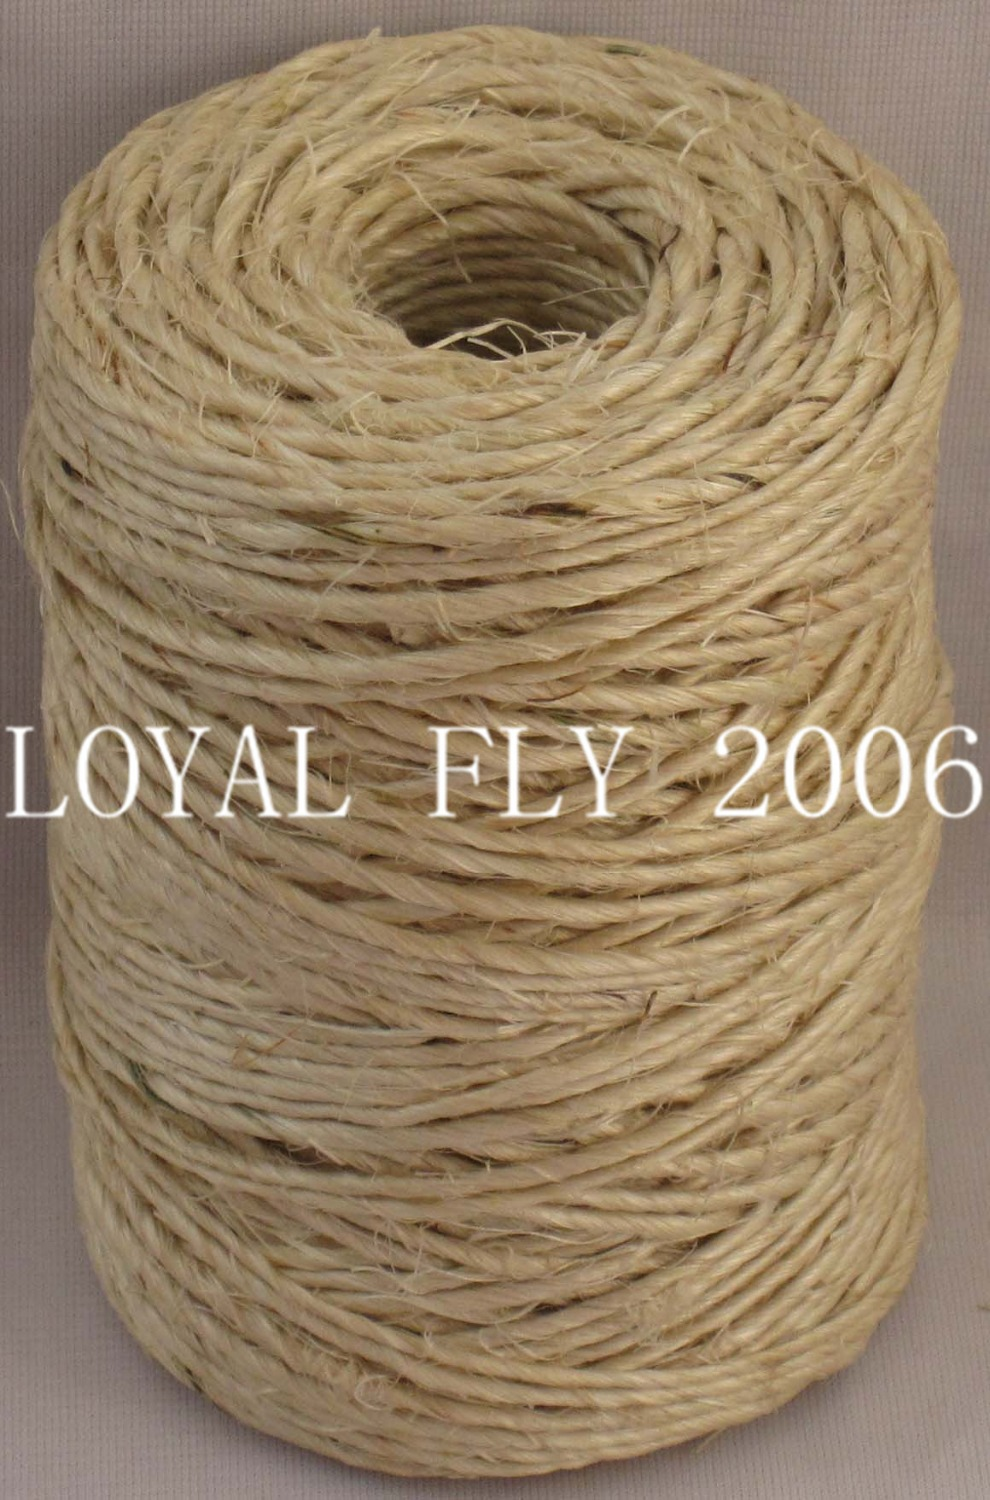 2 pcslot total 160m sisal twine15mm 1ply twisted - Sisal Rope